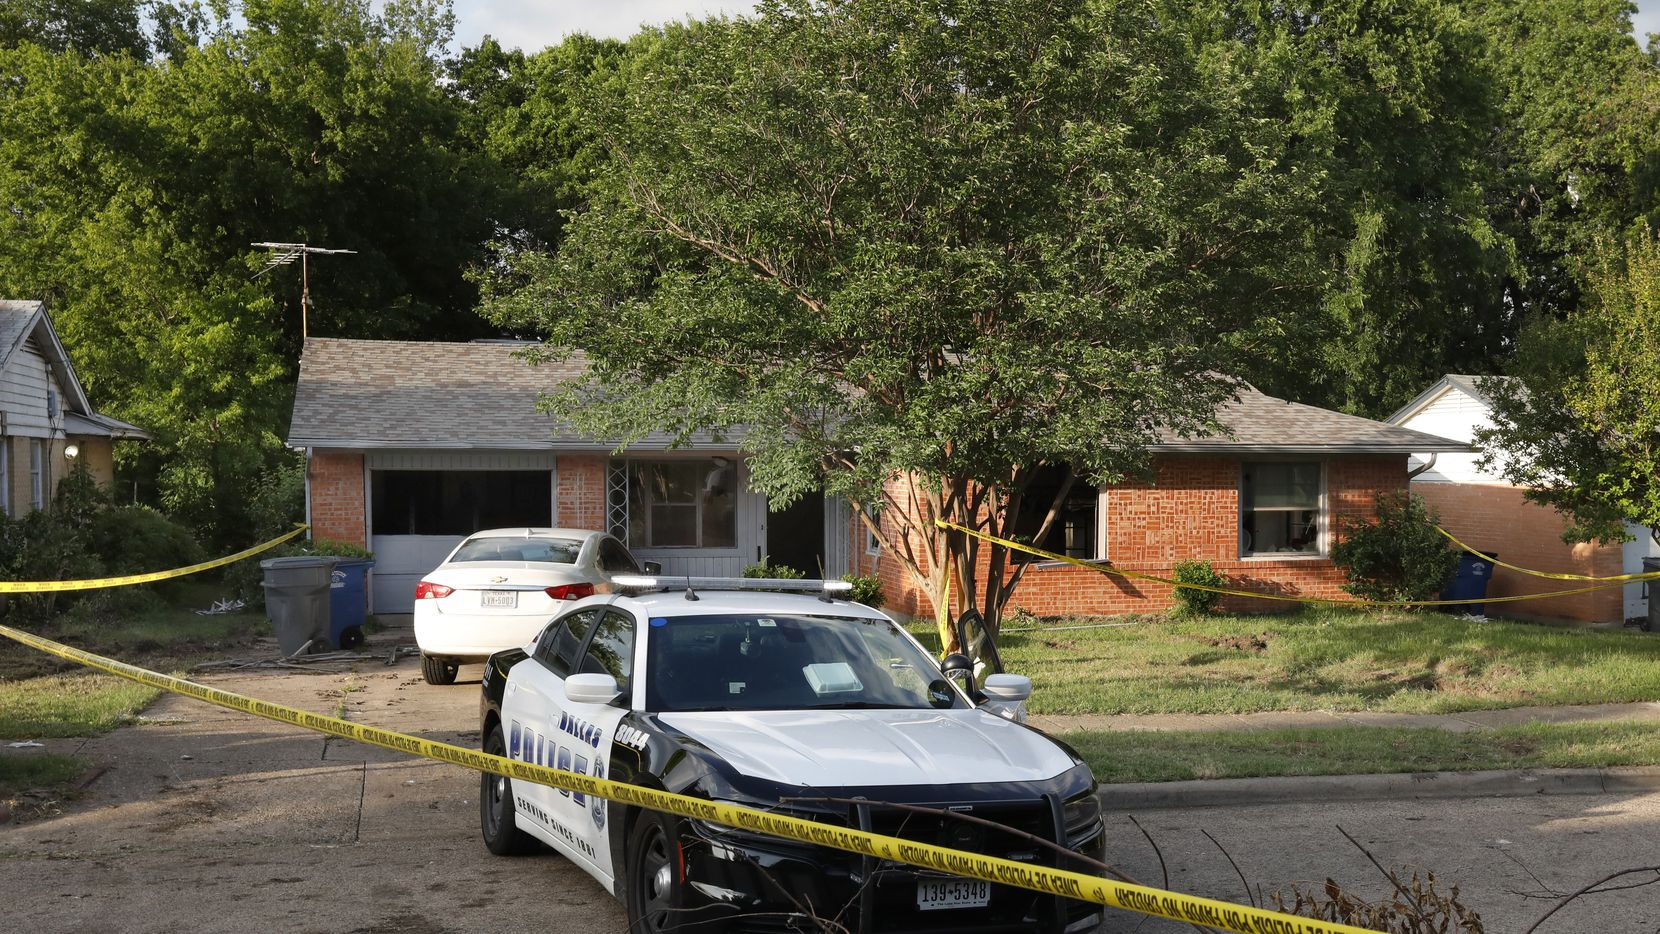 Dallas officers responded to a domestic violence call in the 500 block of Highcrest Drive in Dallas in an incident that turned into a murder-suicide.